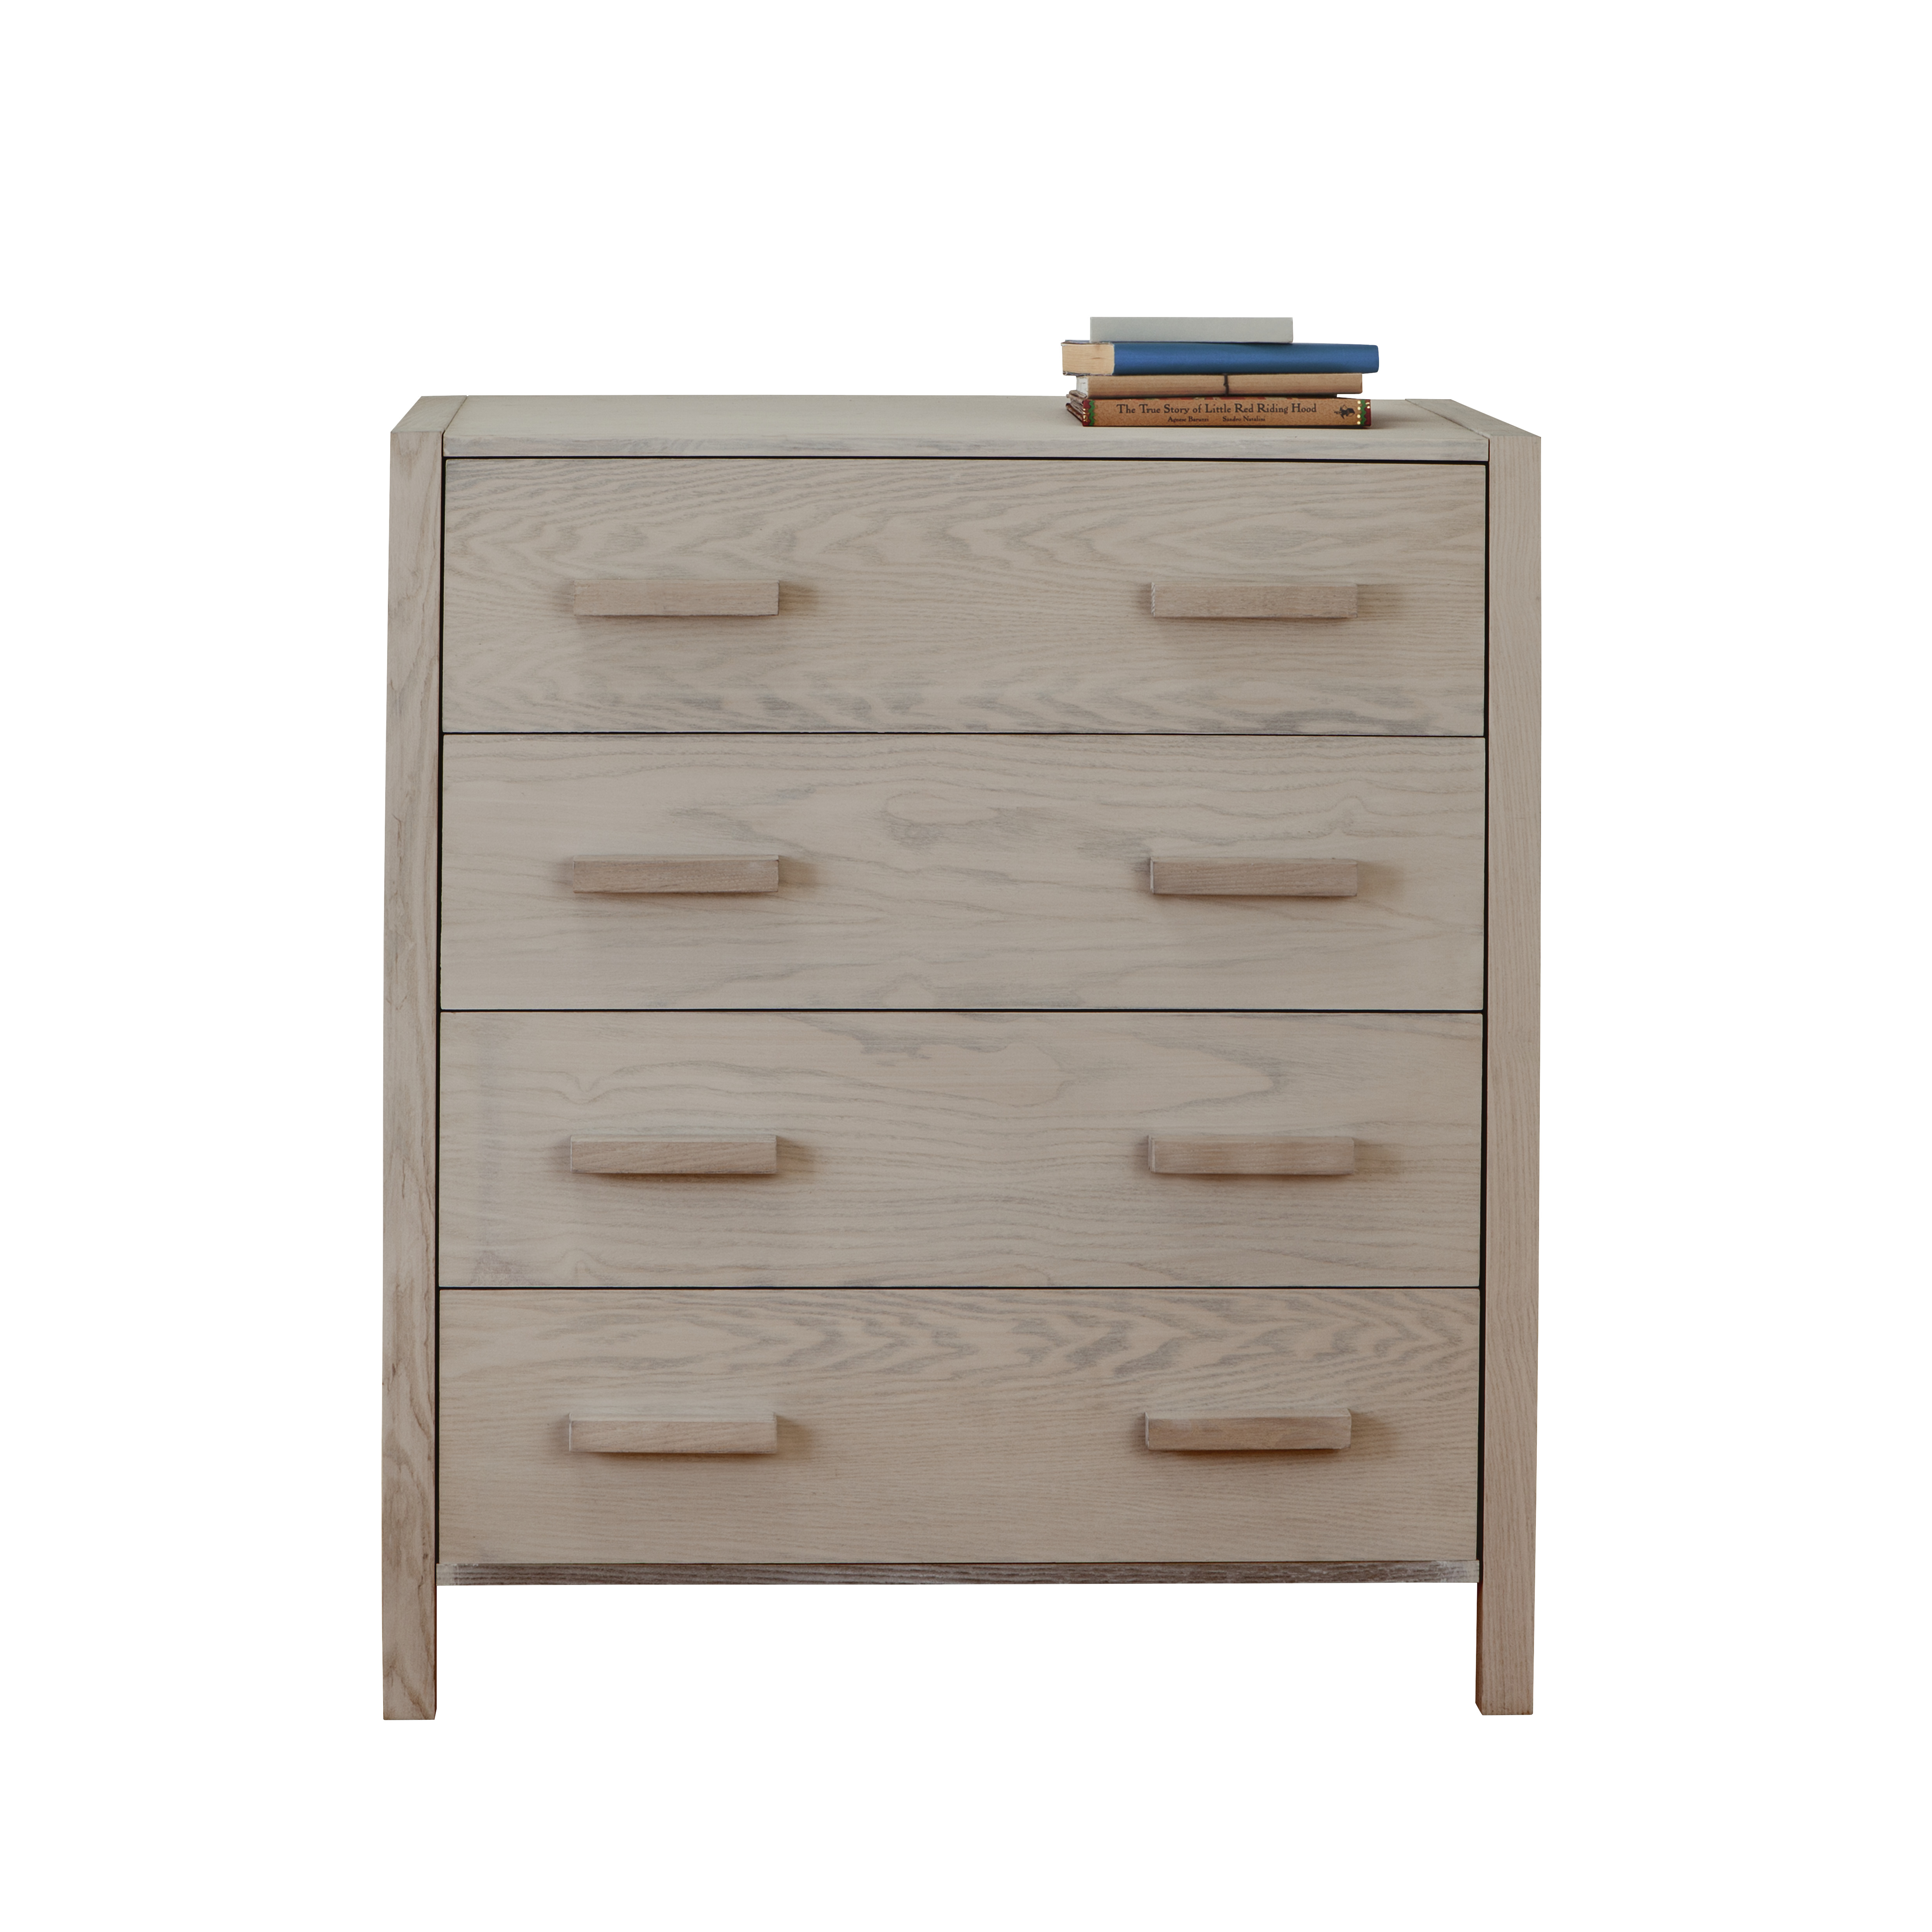 Solid Ash Bedroom Furniture Woodland Chest Of Drawers Grey Ash By Little Folks For Children